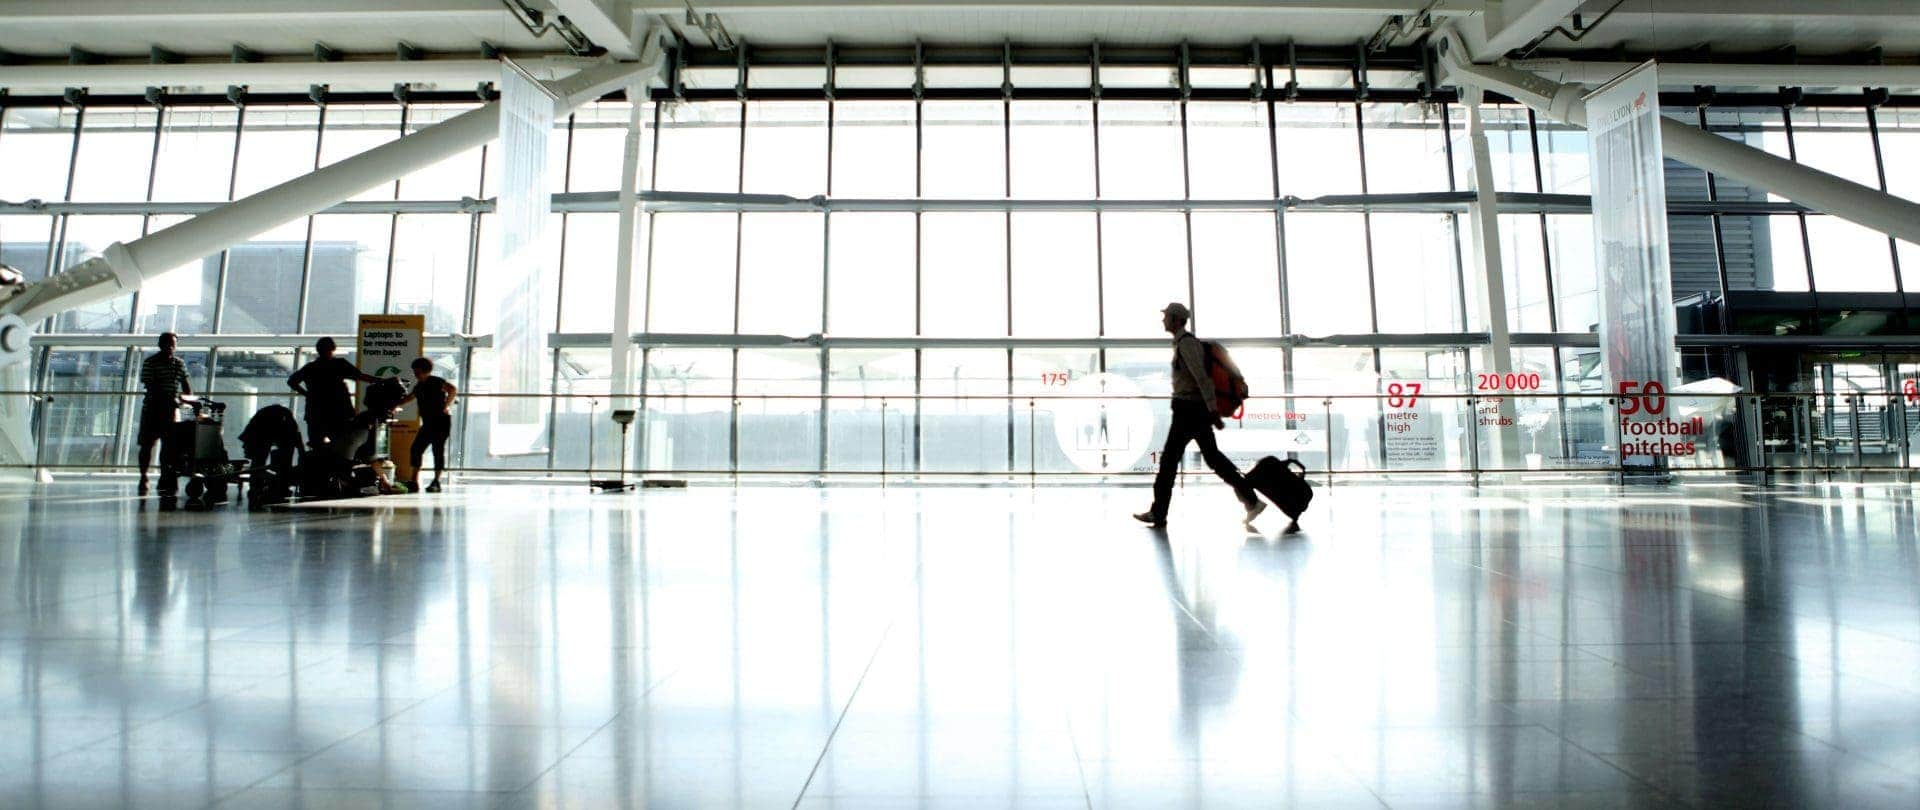 Heathrow Reaches 29th Consecutive Record Month with over 6.5 million Passengers Travelling Through in March